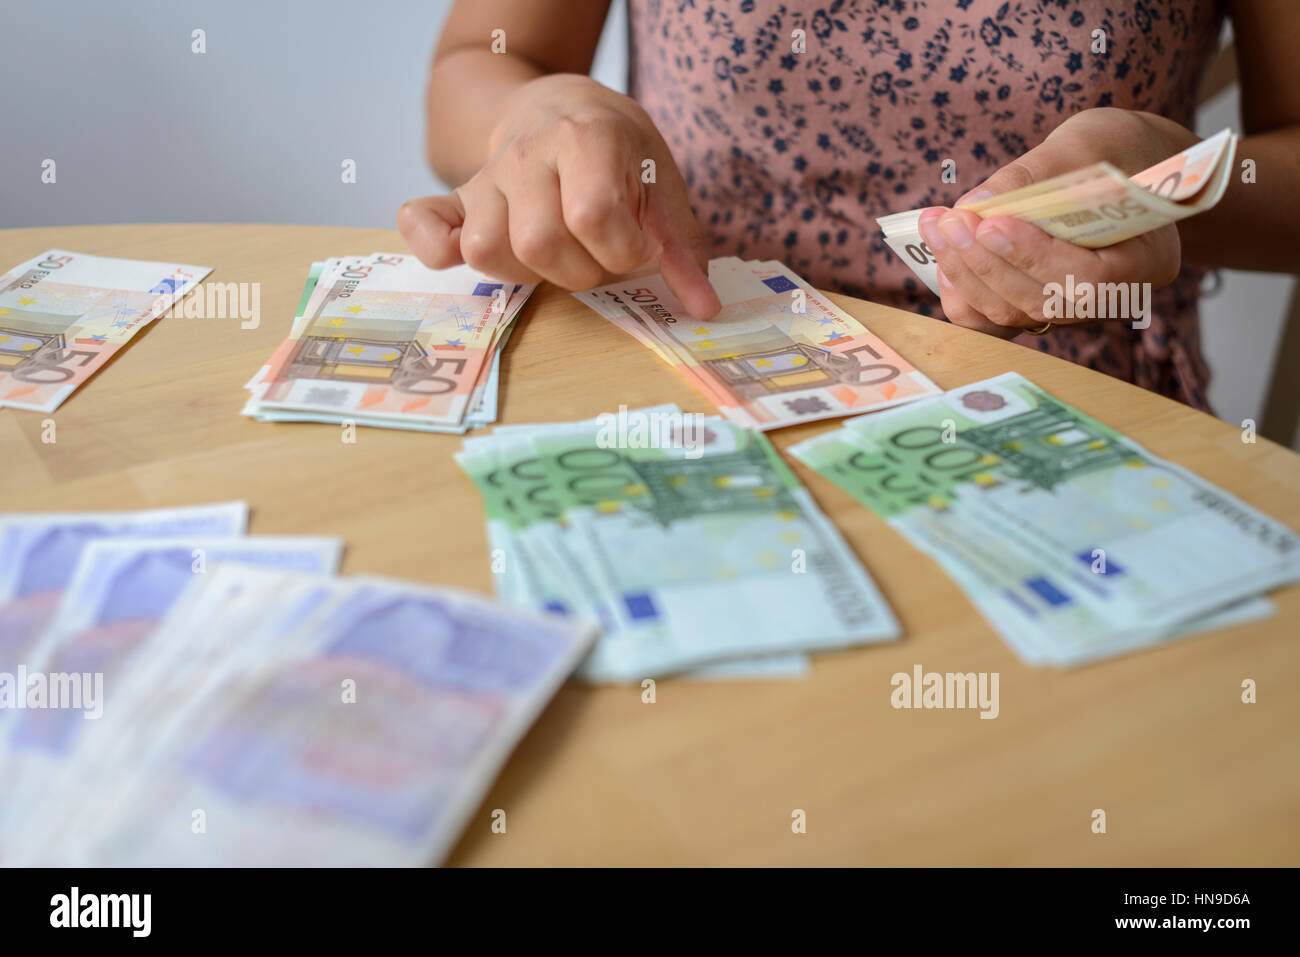 Person counting Euro currency - Stock Image